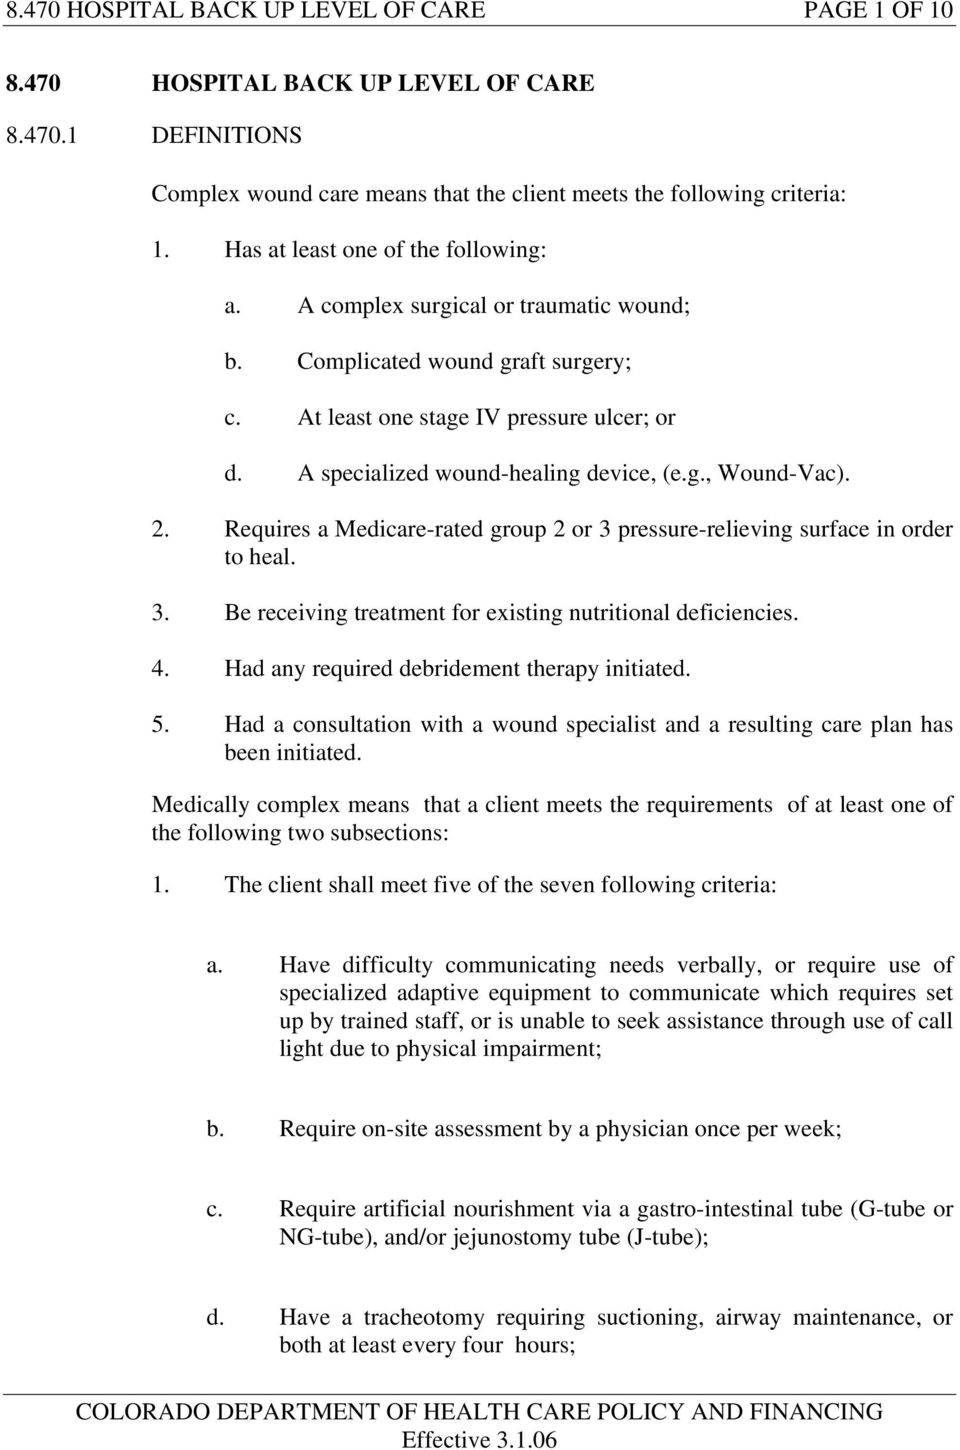 g., Wound-Vac). 2. Requires a Medicare-rated group 2 or 3 pressure-relieving surface in order to heal. 3. Be receiving treatment for existing nutritional deficiencies. 4.